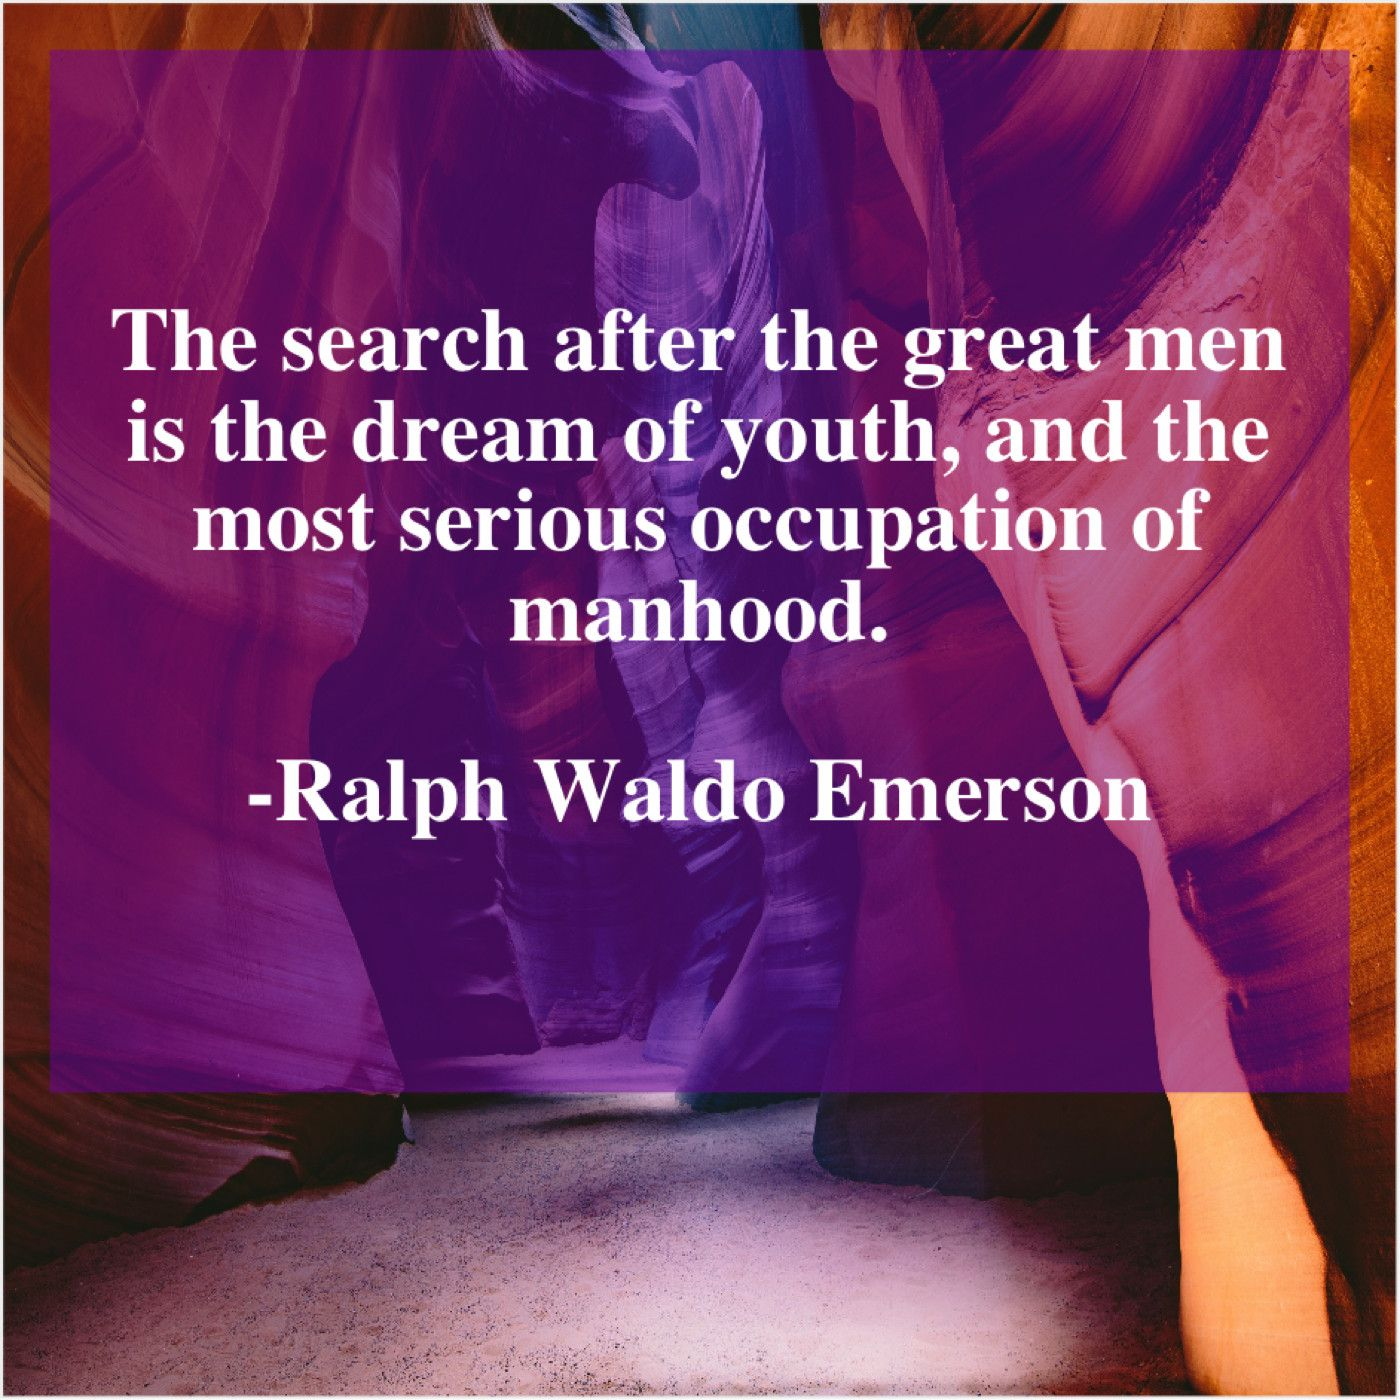 Ralph Waldo Emerson The Search After The Great David Arquette Ann Coulter Arizona Muse